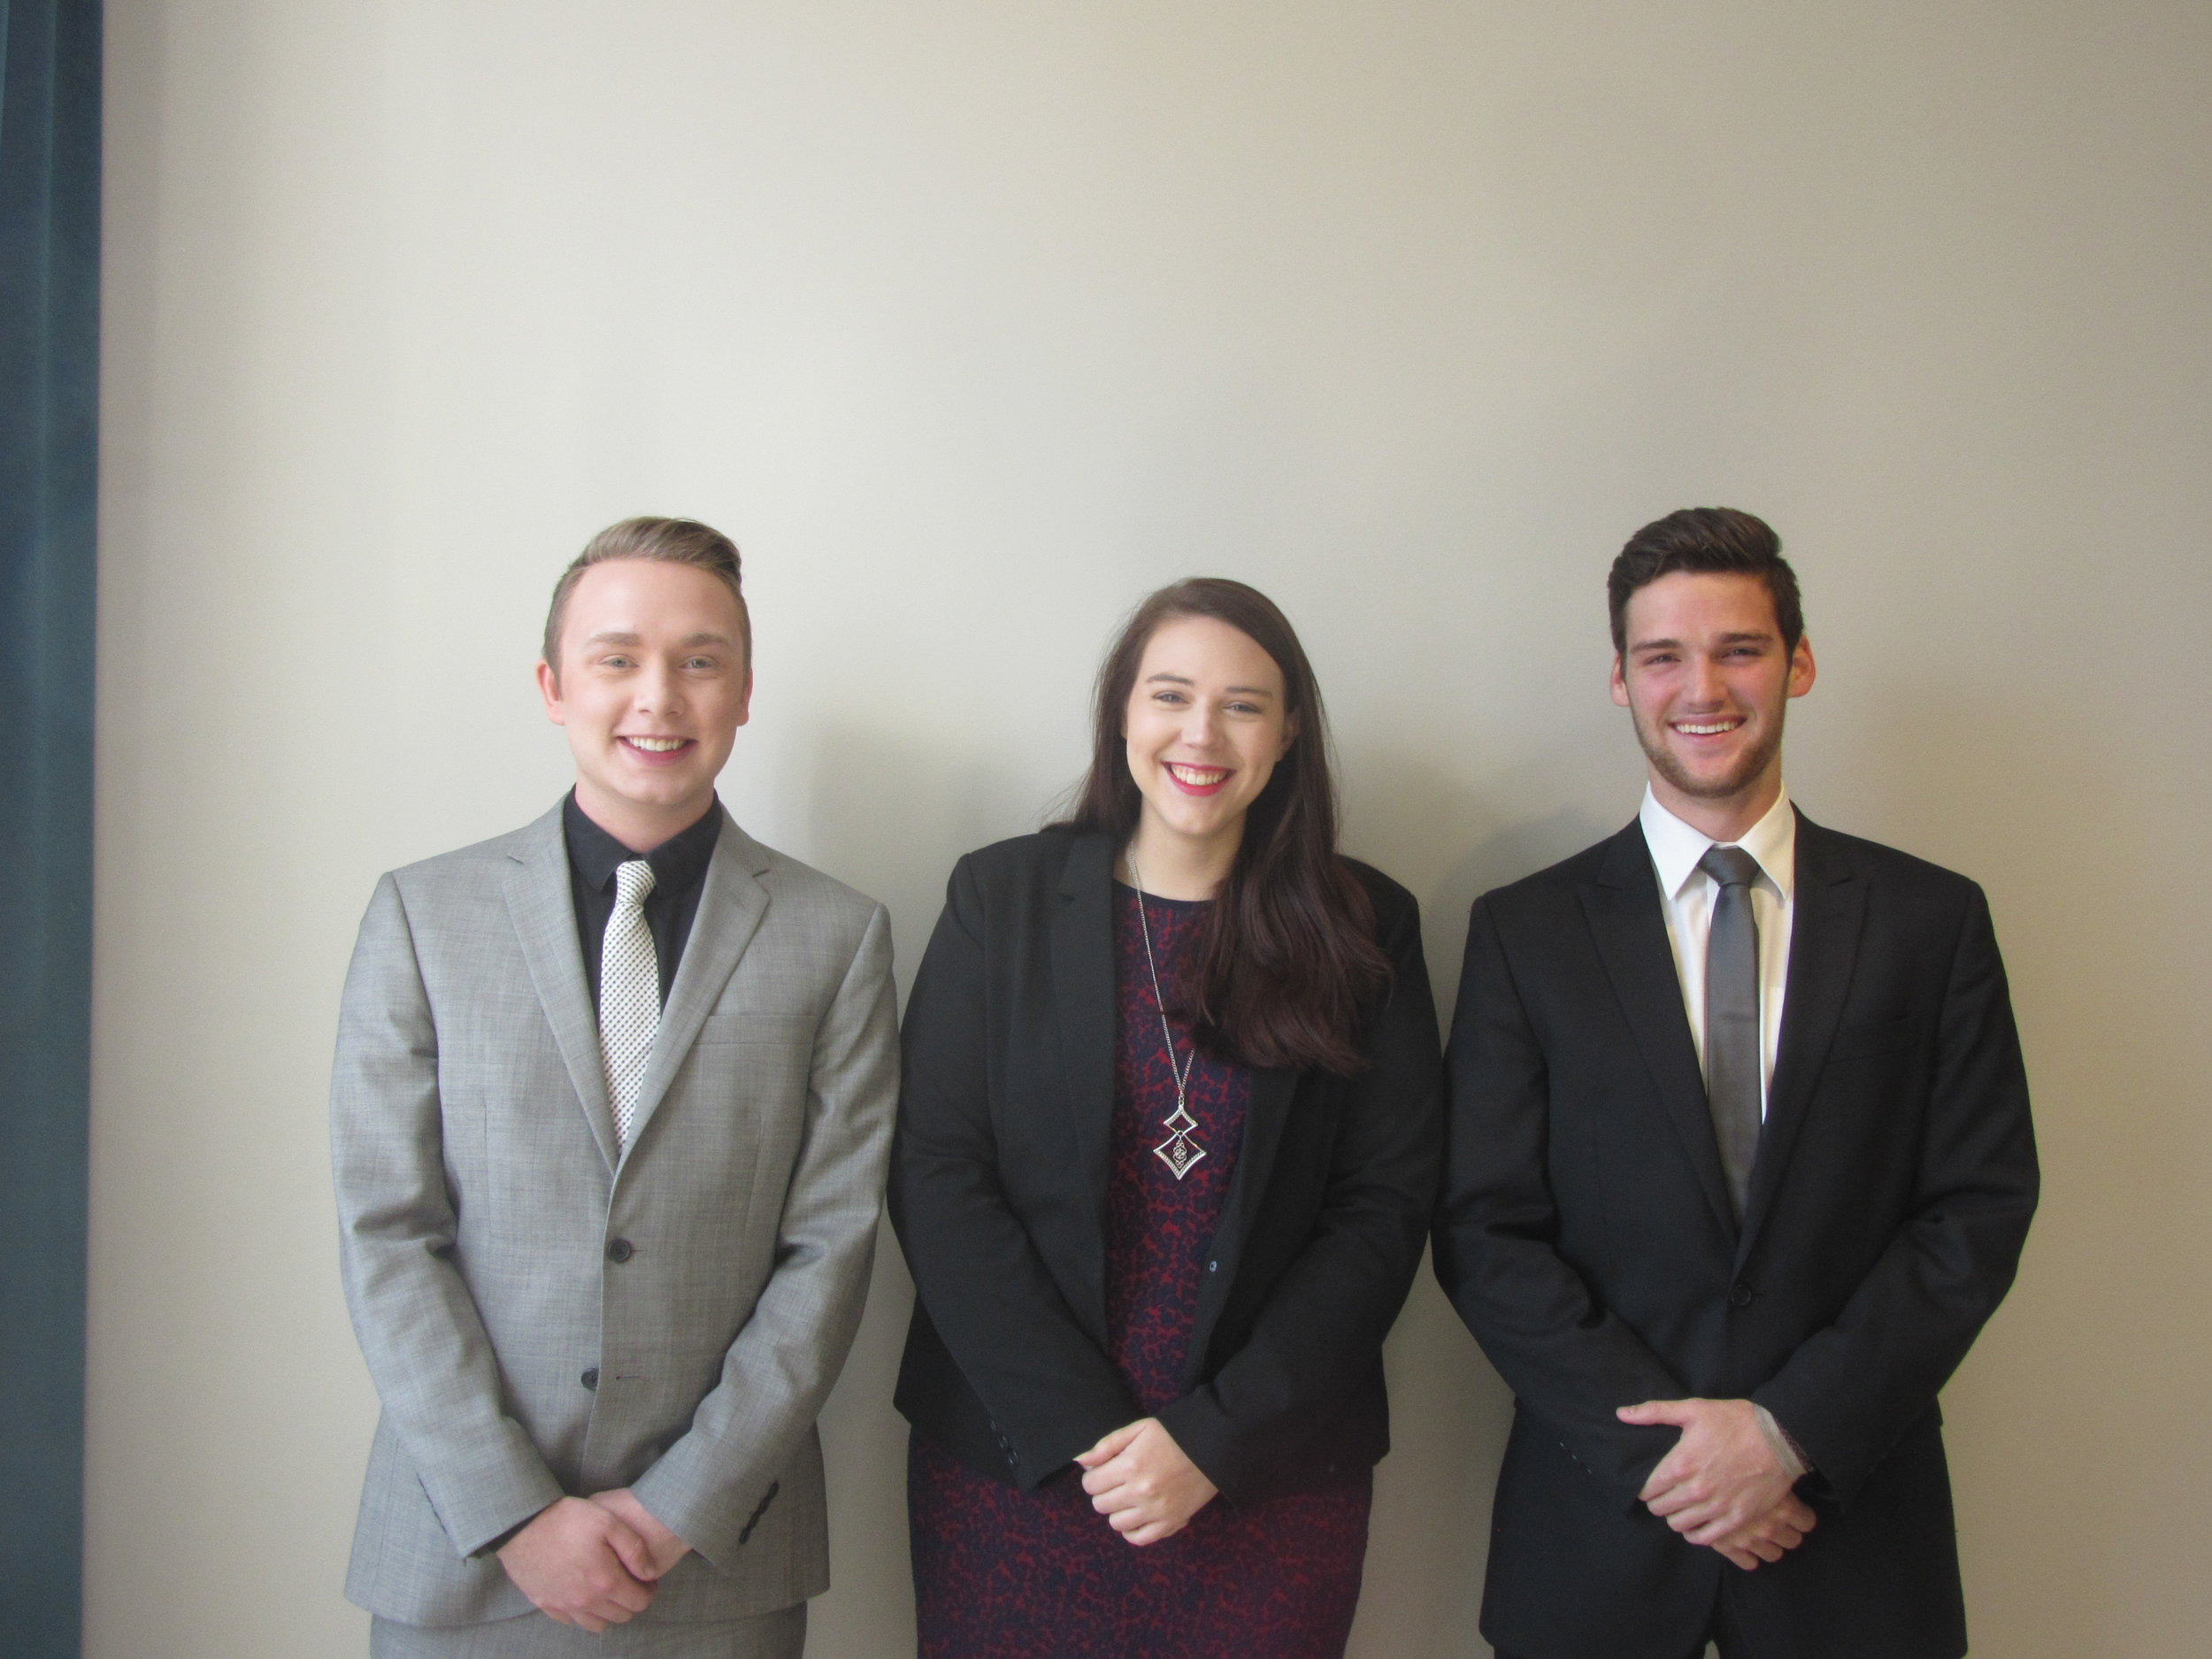 Featuring Perfetto Polish which received the Kevin R. Stump Sr. Overall Entrepreneurship Challenge Award (left to right: Scott Barton, Meredith McAdory, and Dallas Coyne).